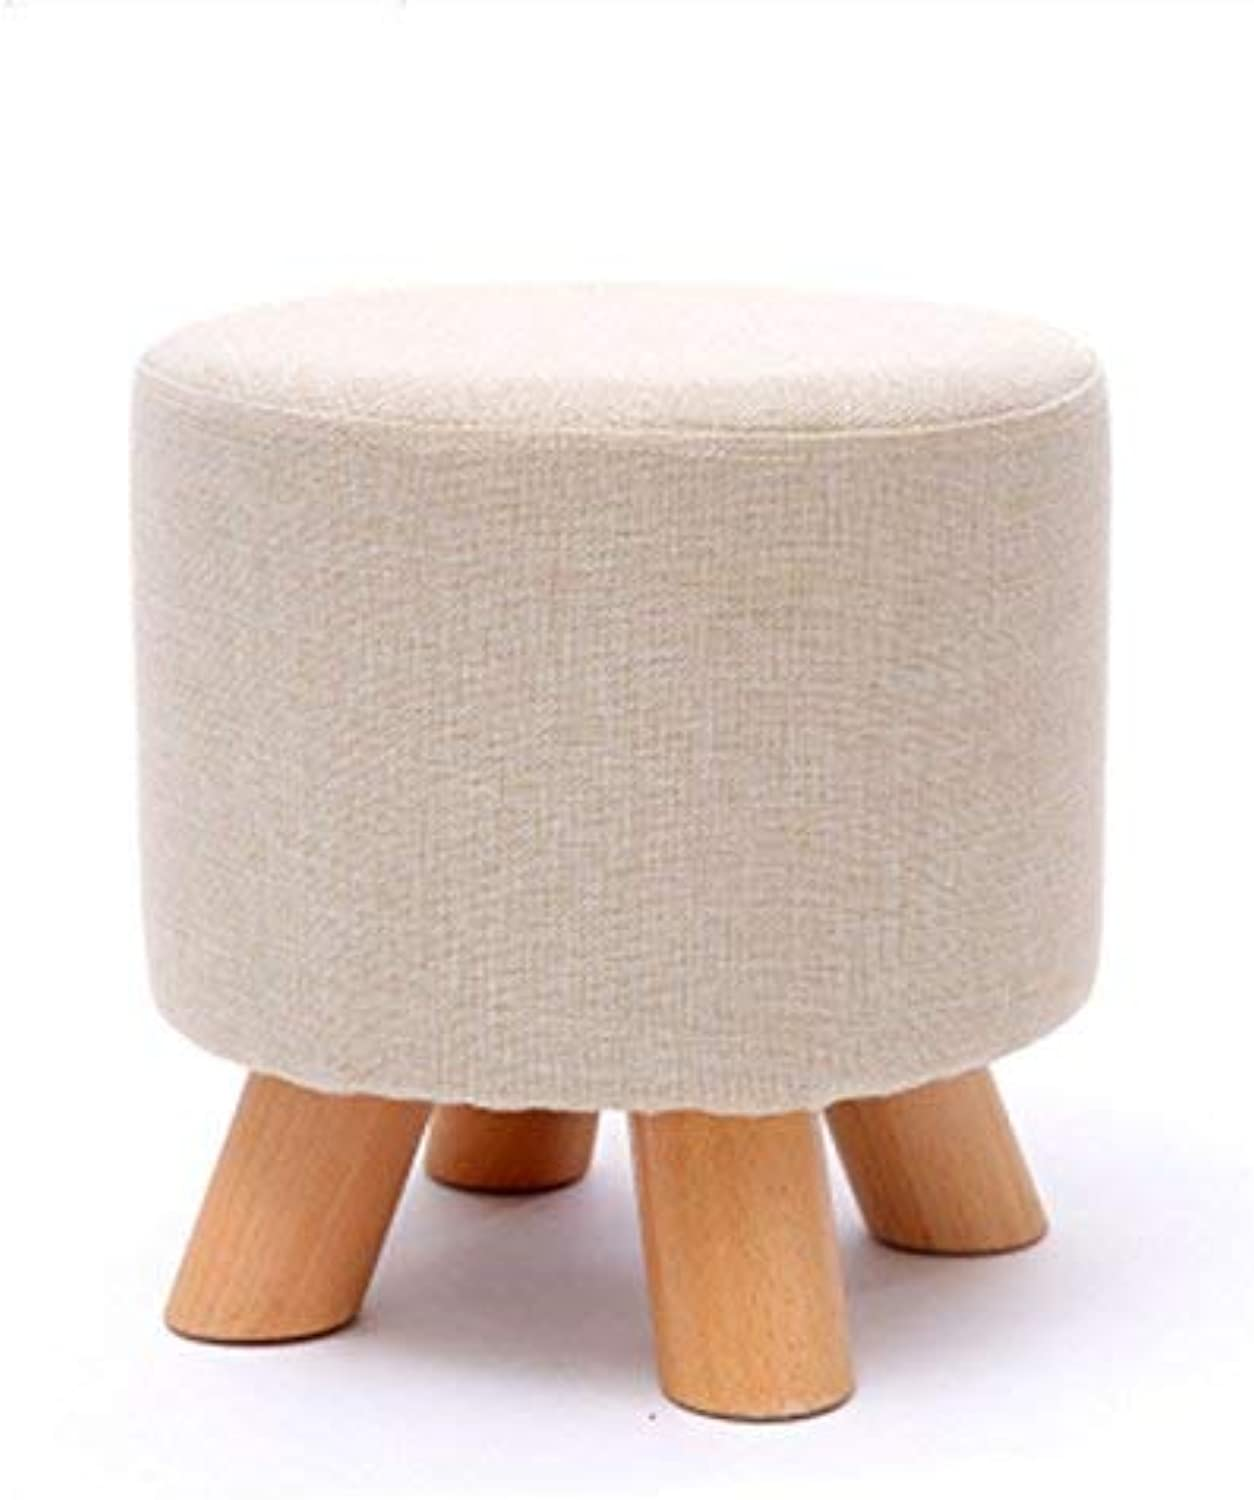 Ronggoutrade Solid Wood Home Stool Creative Living Room shoes Stool Fabric Sofa Stool Short Stool - Small Stool (color    5)